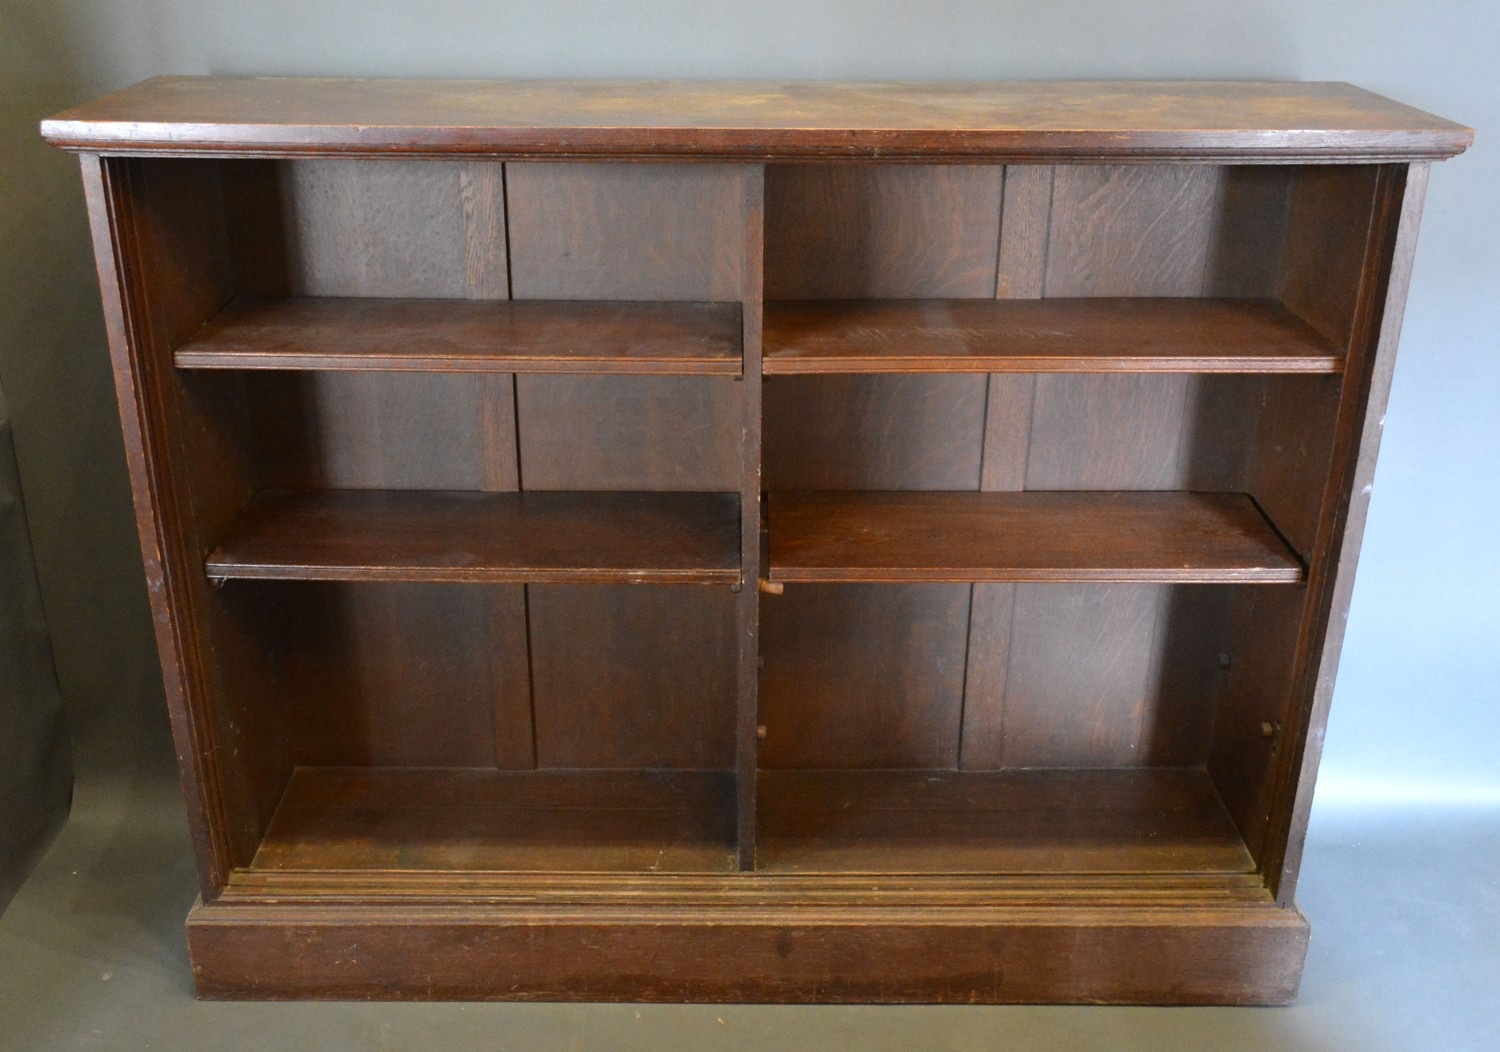 An early 20th century oak large dwarf bookcase, 215cms wide, 38cms deep, 123cms high, together - Image 2 of 2